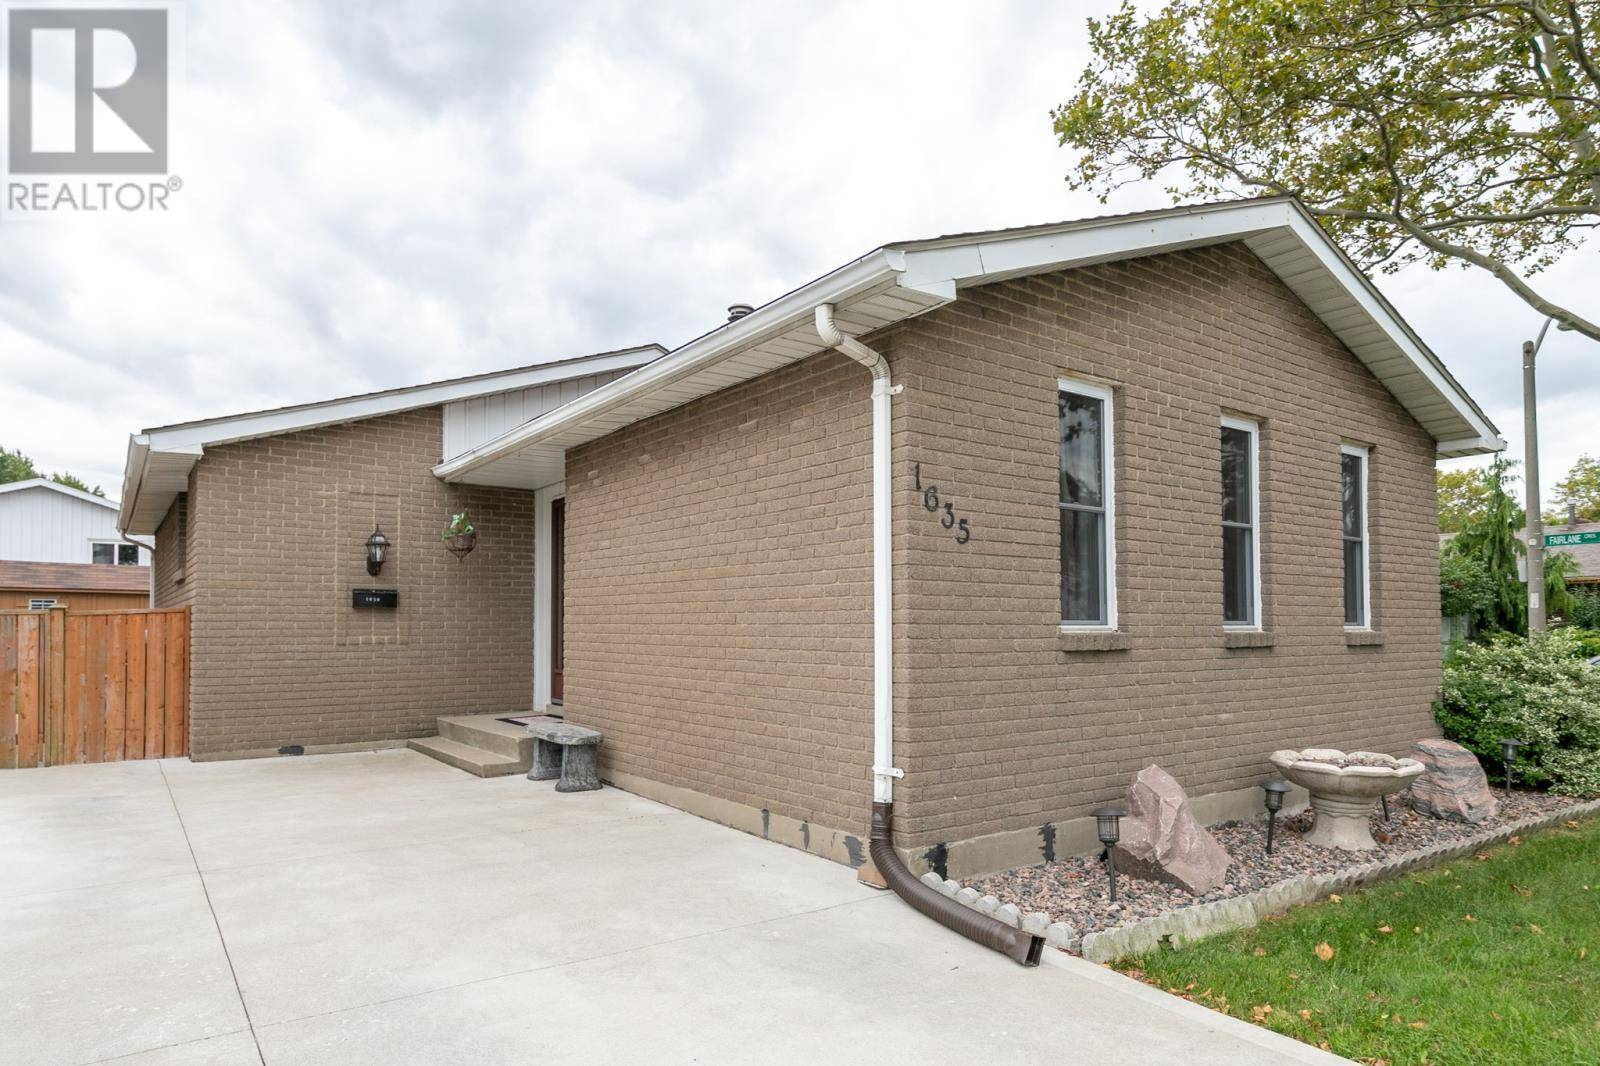 House for sale at 1635 Hallmark  Windsor Ontario - MLS: 19026146